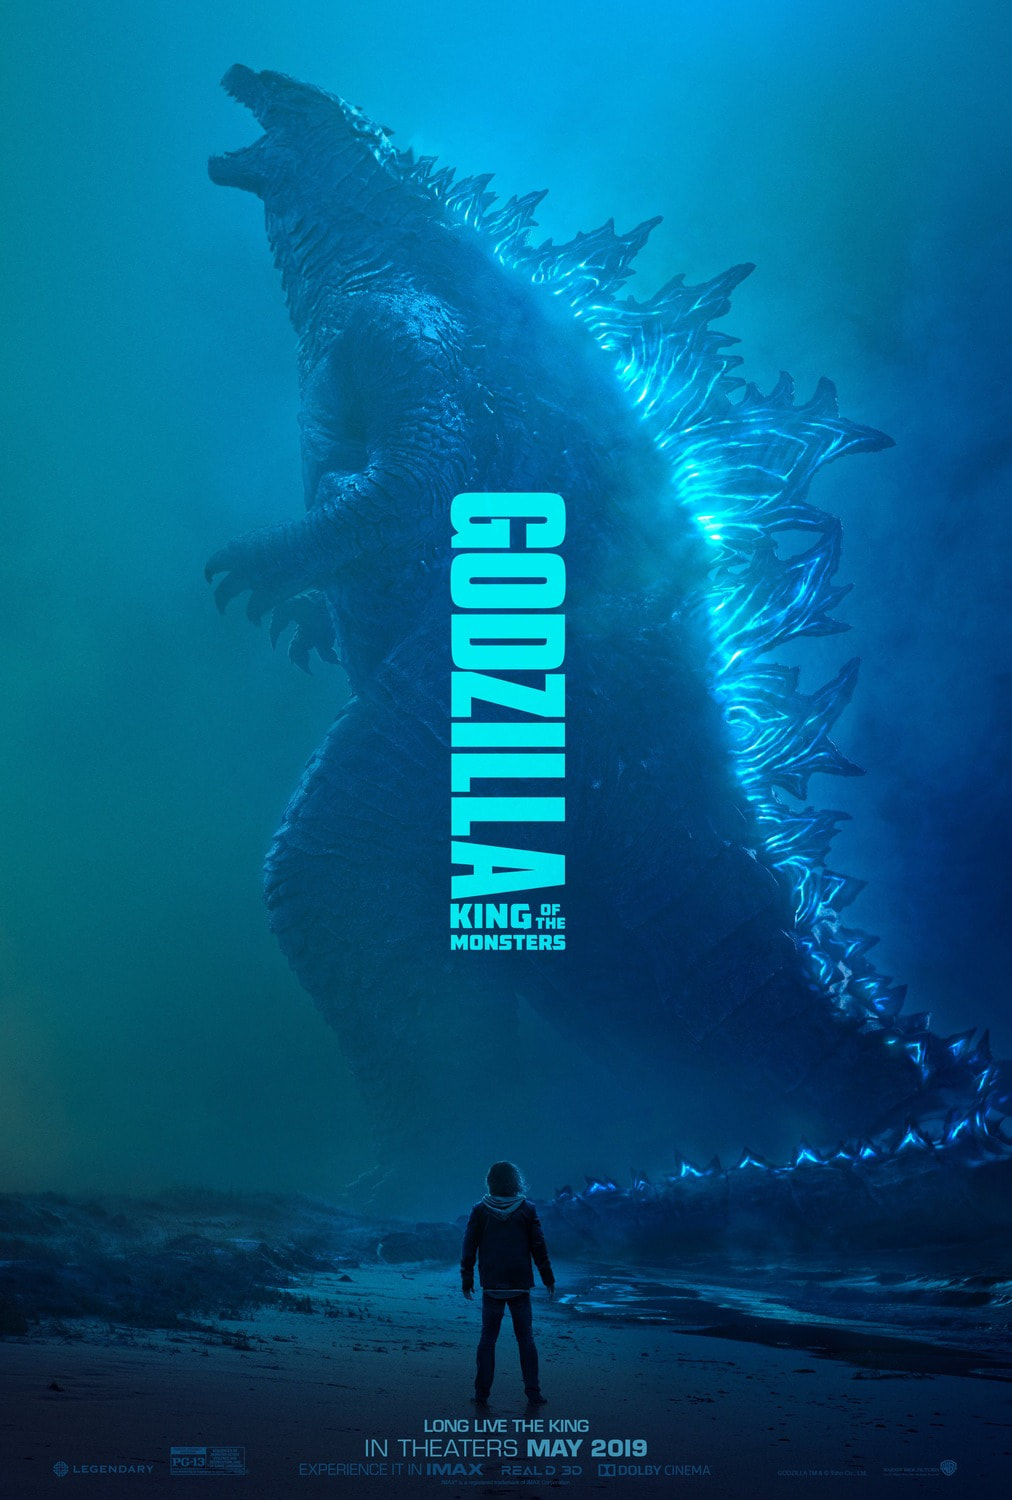 Godzilla-King-of-the-Monstesr-movie-2019-poster